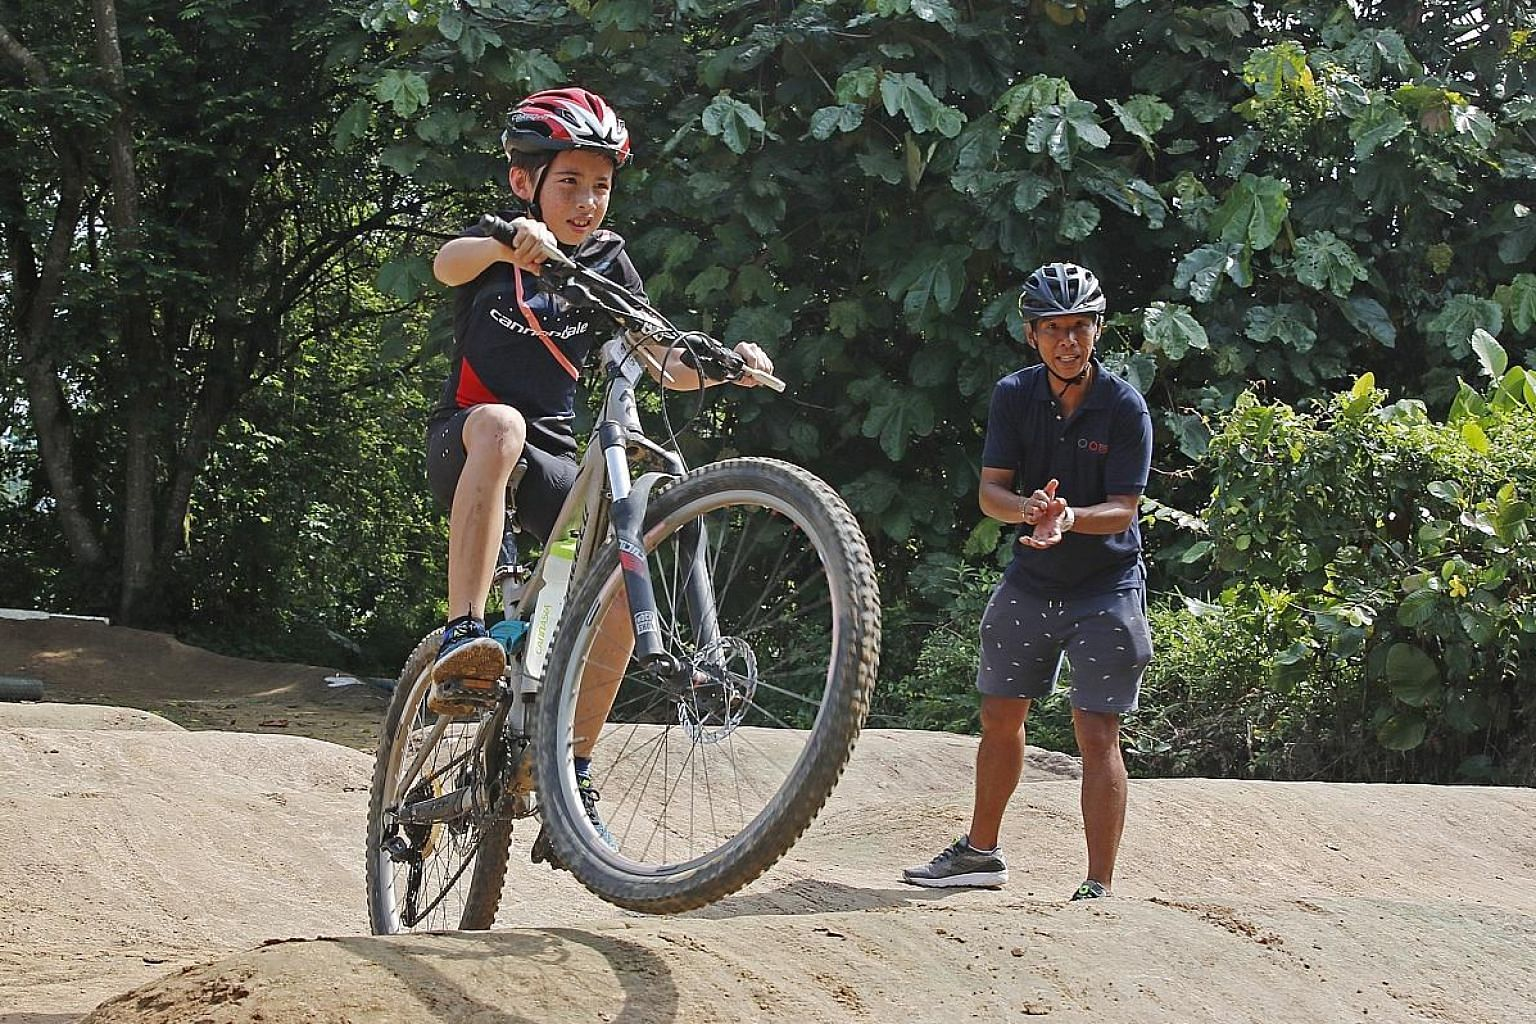 Some 50 children experienced off-road riding at a clinic to mark the Singapore Cycling Federation's launch of its youth development academy at Turf City's Centaurs Sports Park yesterday.